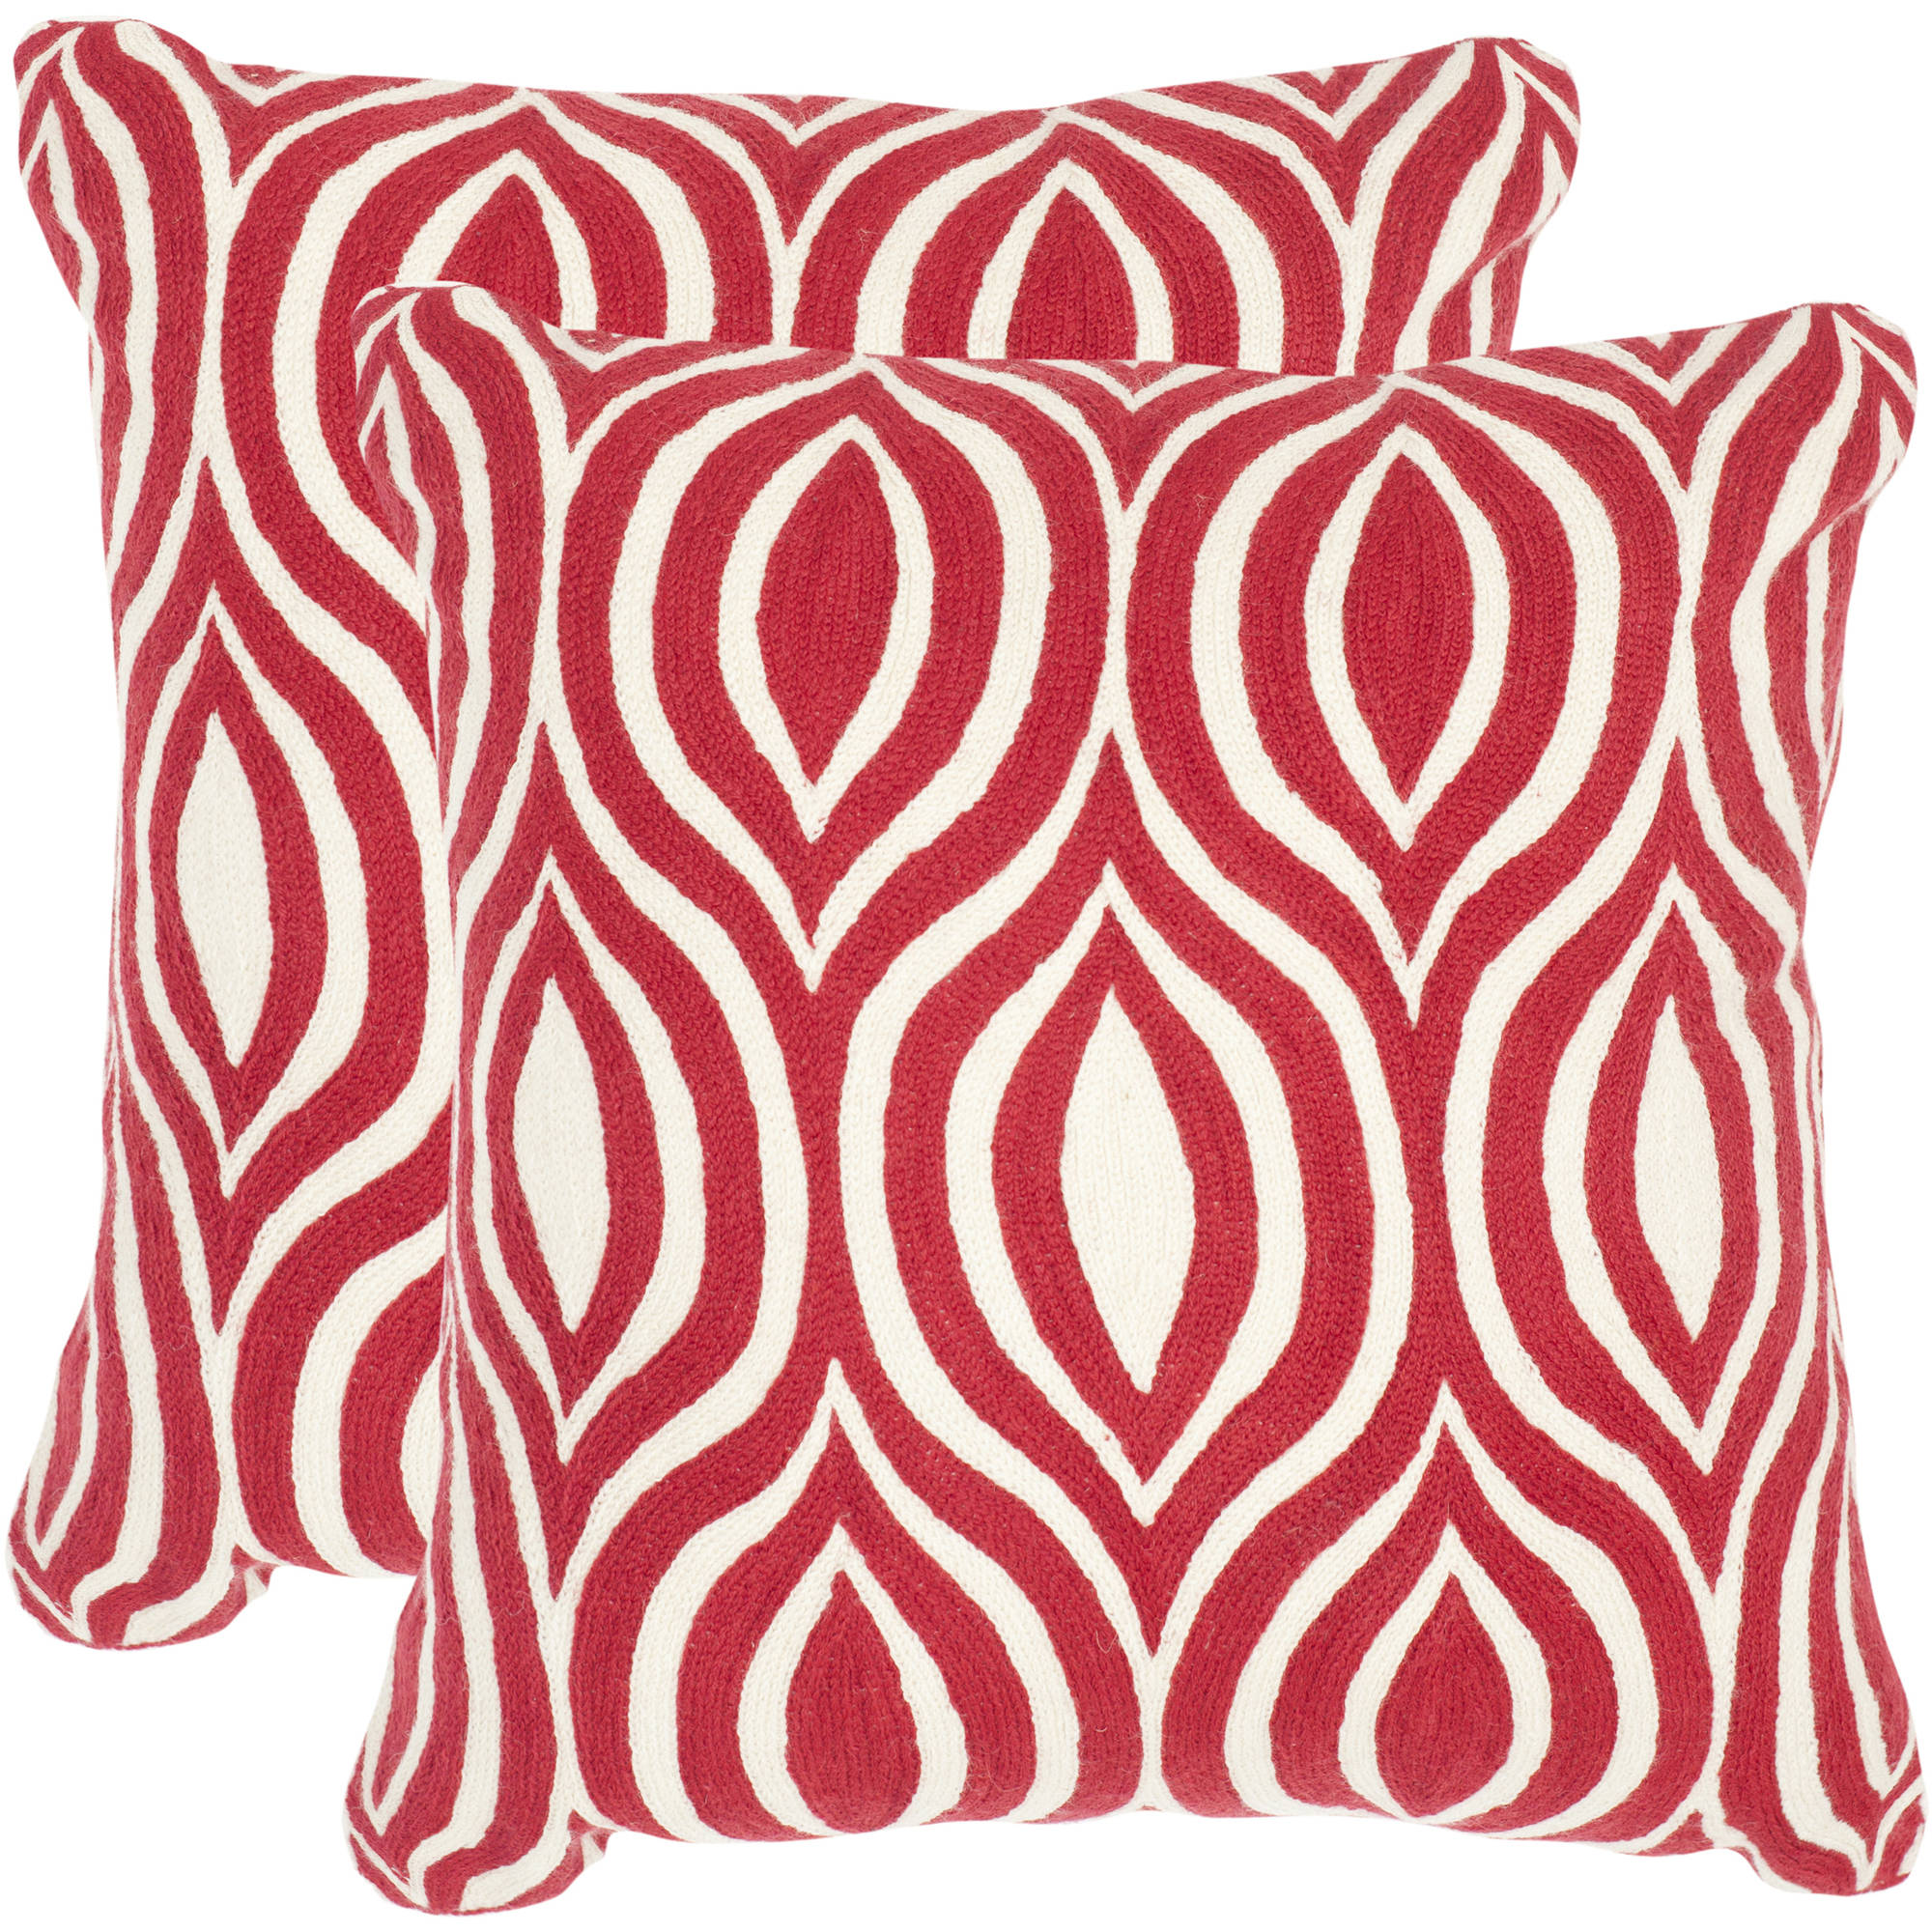 Safavieh Metis Red Pillow, Set of 2